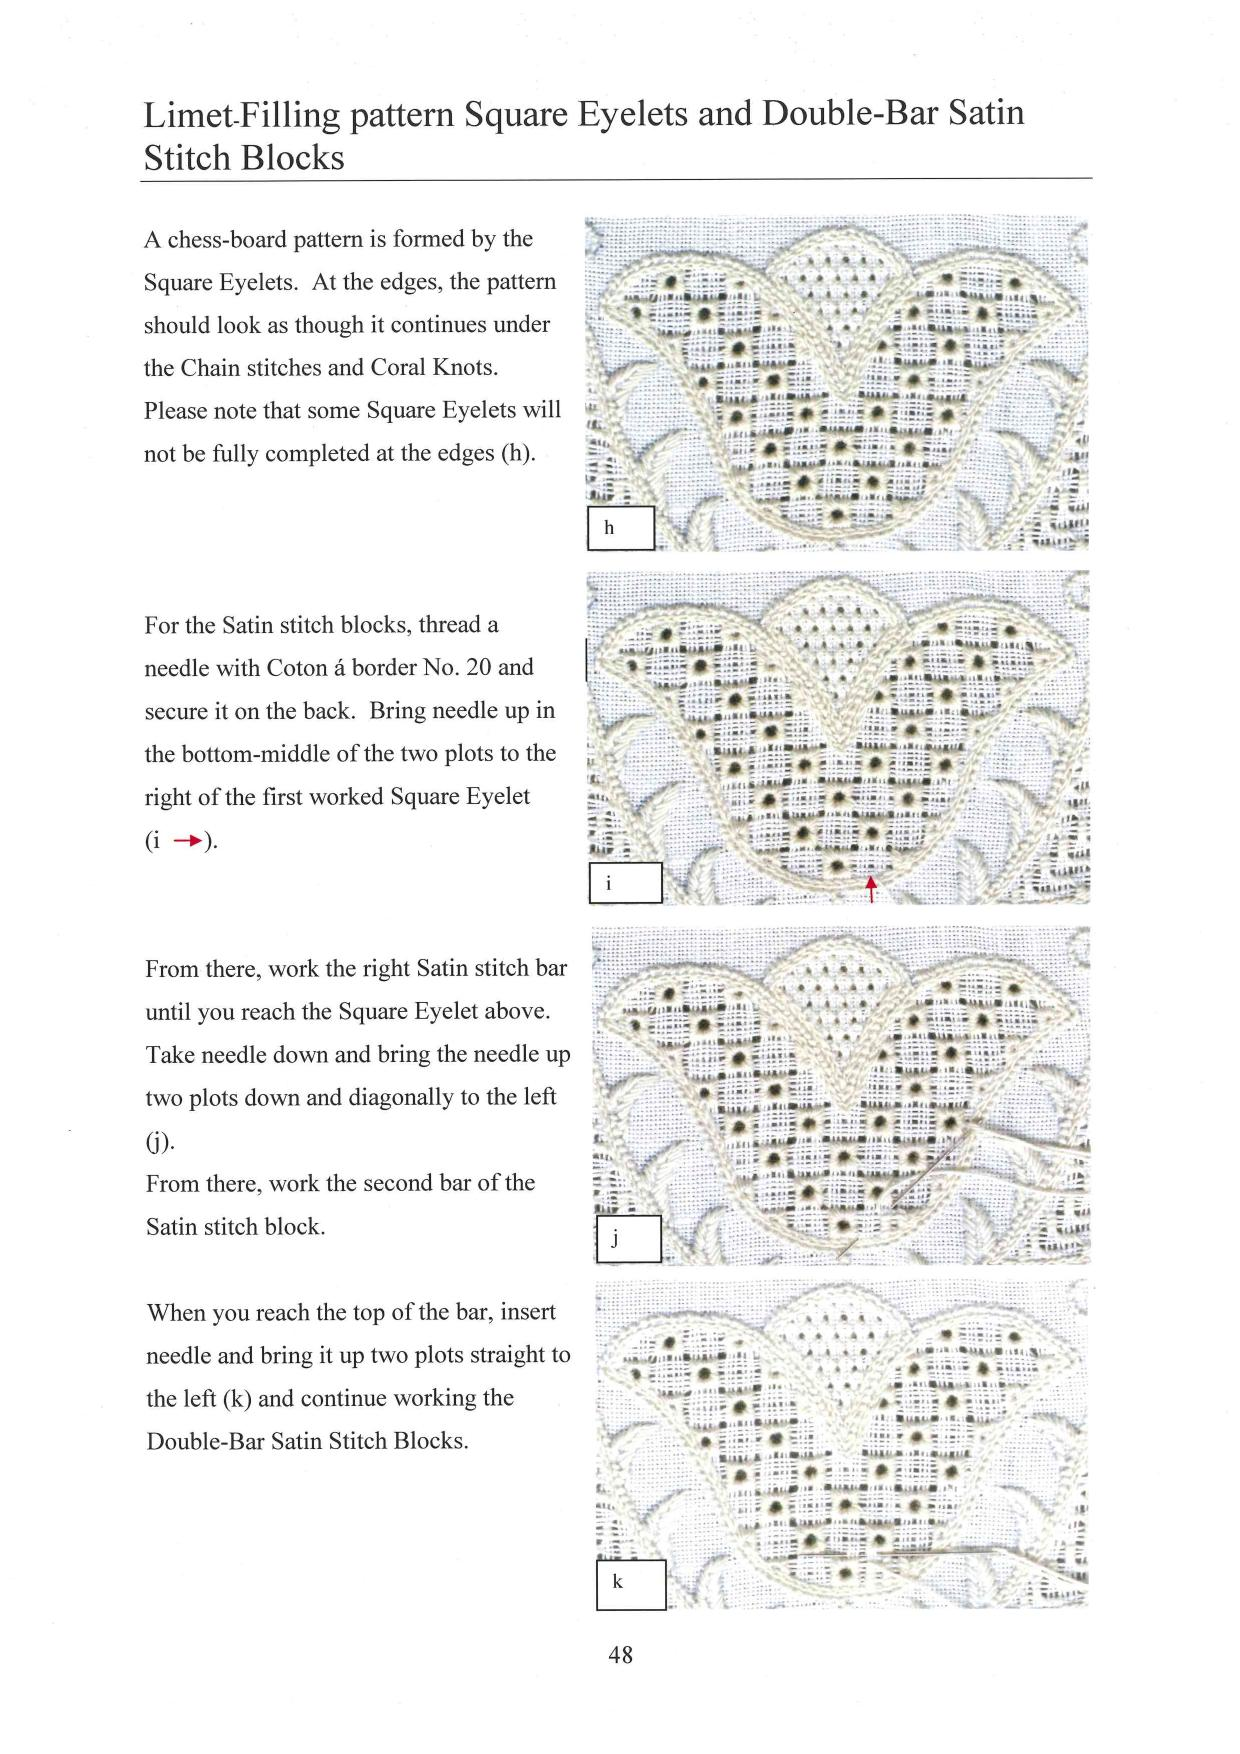 Basic Principles of Schwalm Whitework 7 / 8